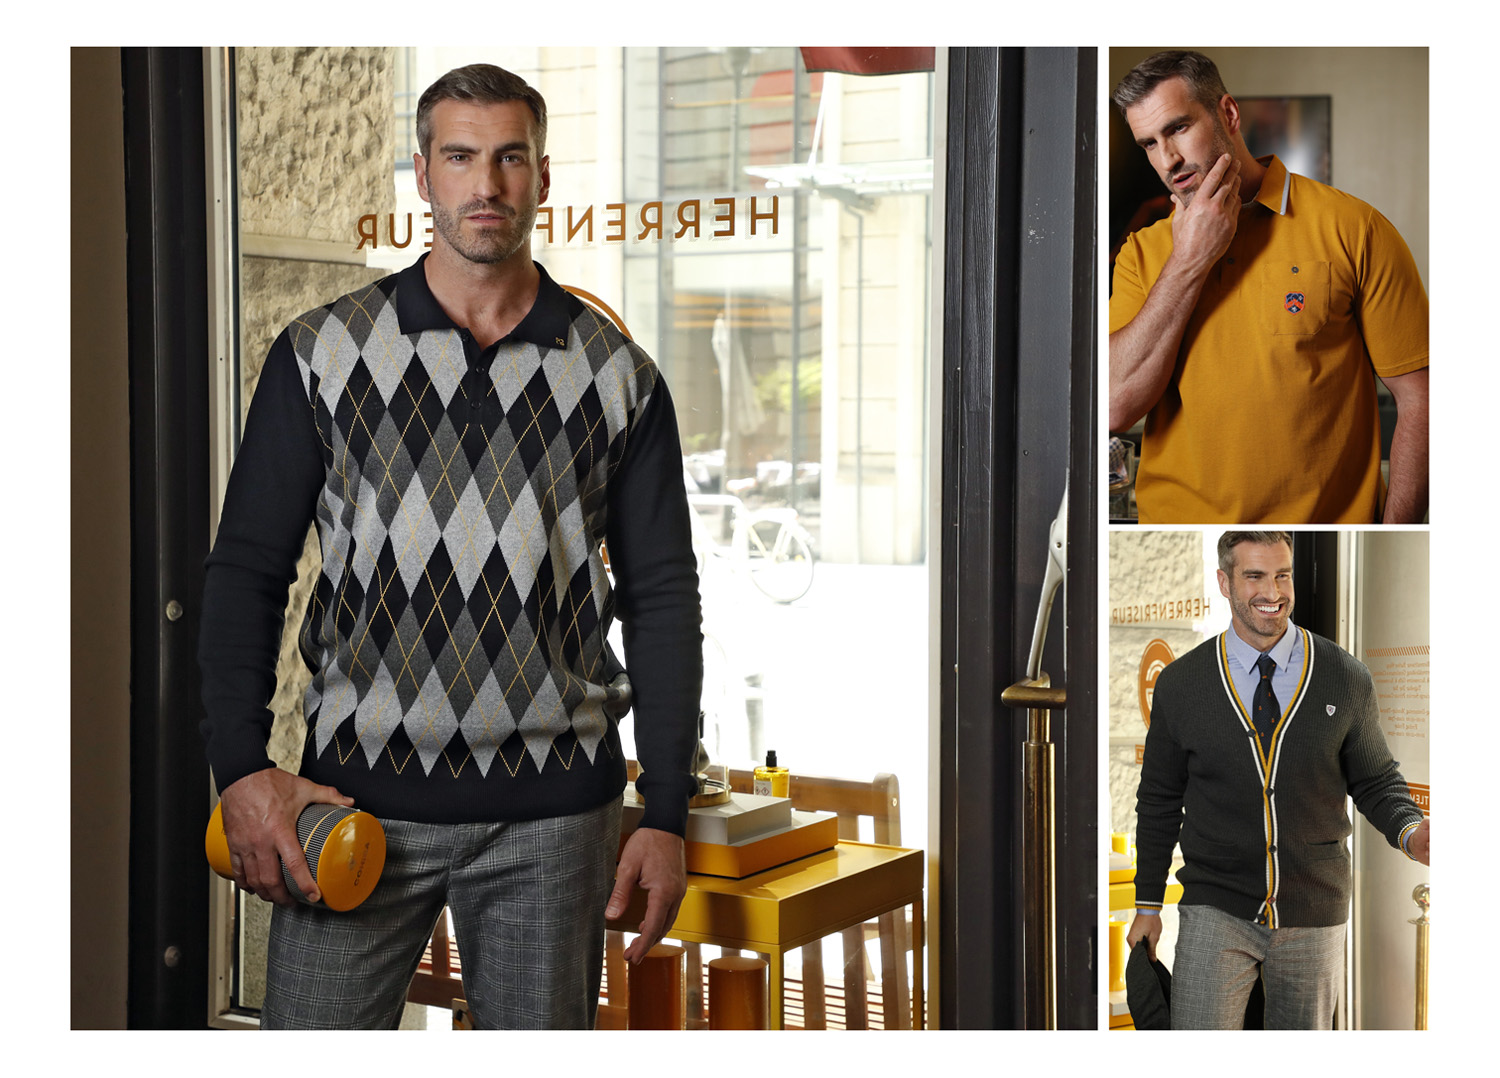 BRIDGE Models's Kyle Andrew shoots for the Charles Colby's AW21 collection